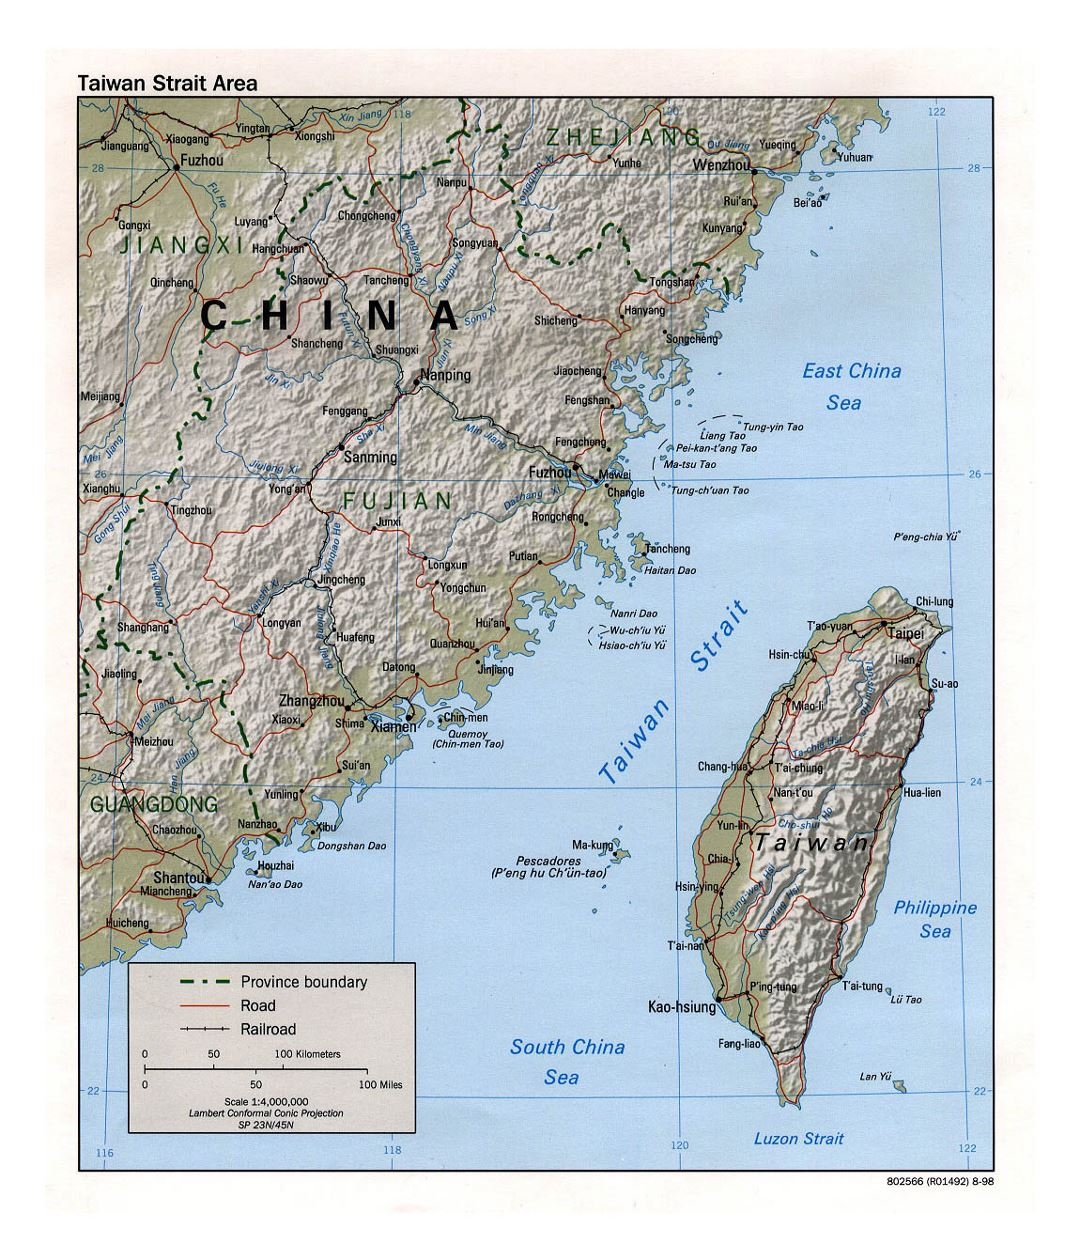 Detailed Taiwan Strait Area map with relief, roads, railroads and major cities - 1998